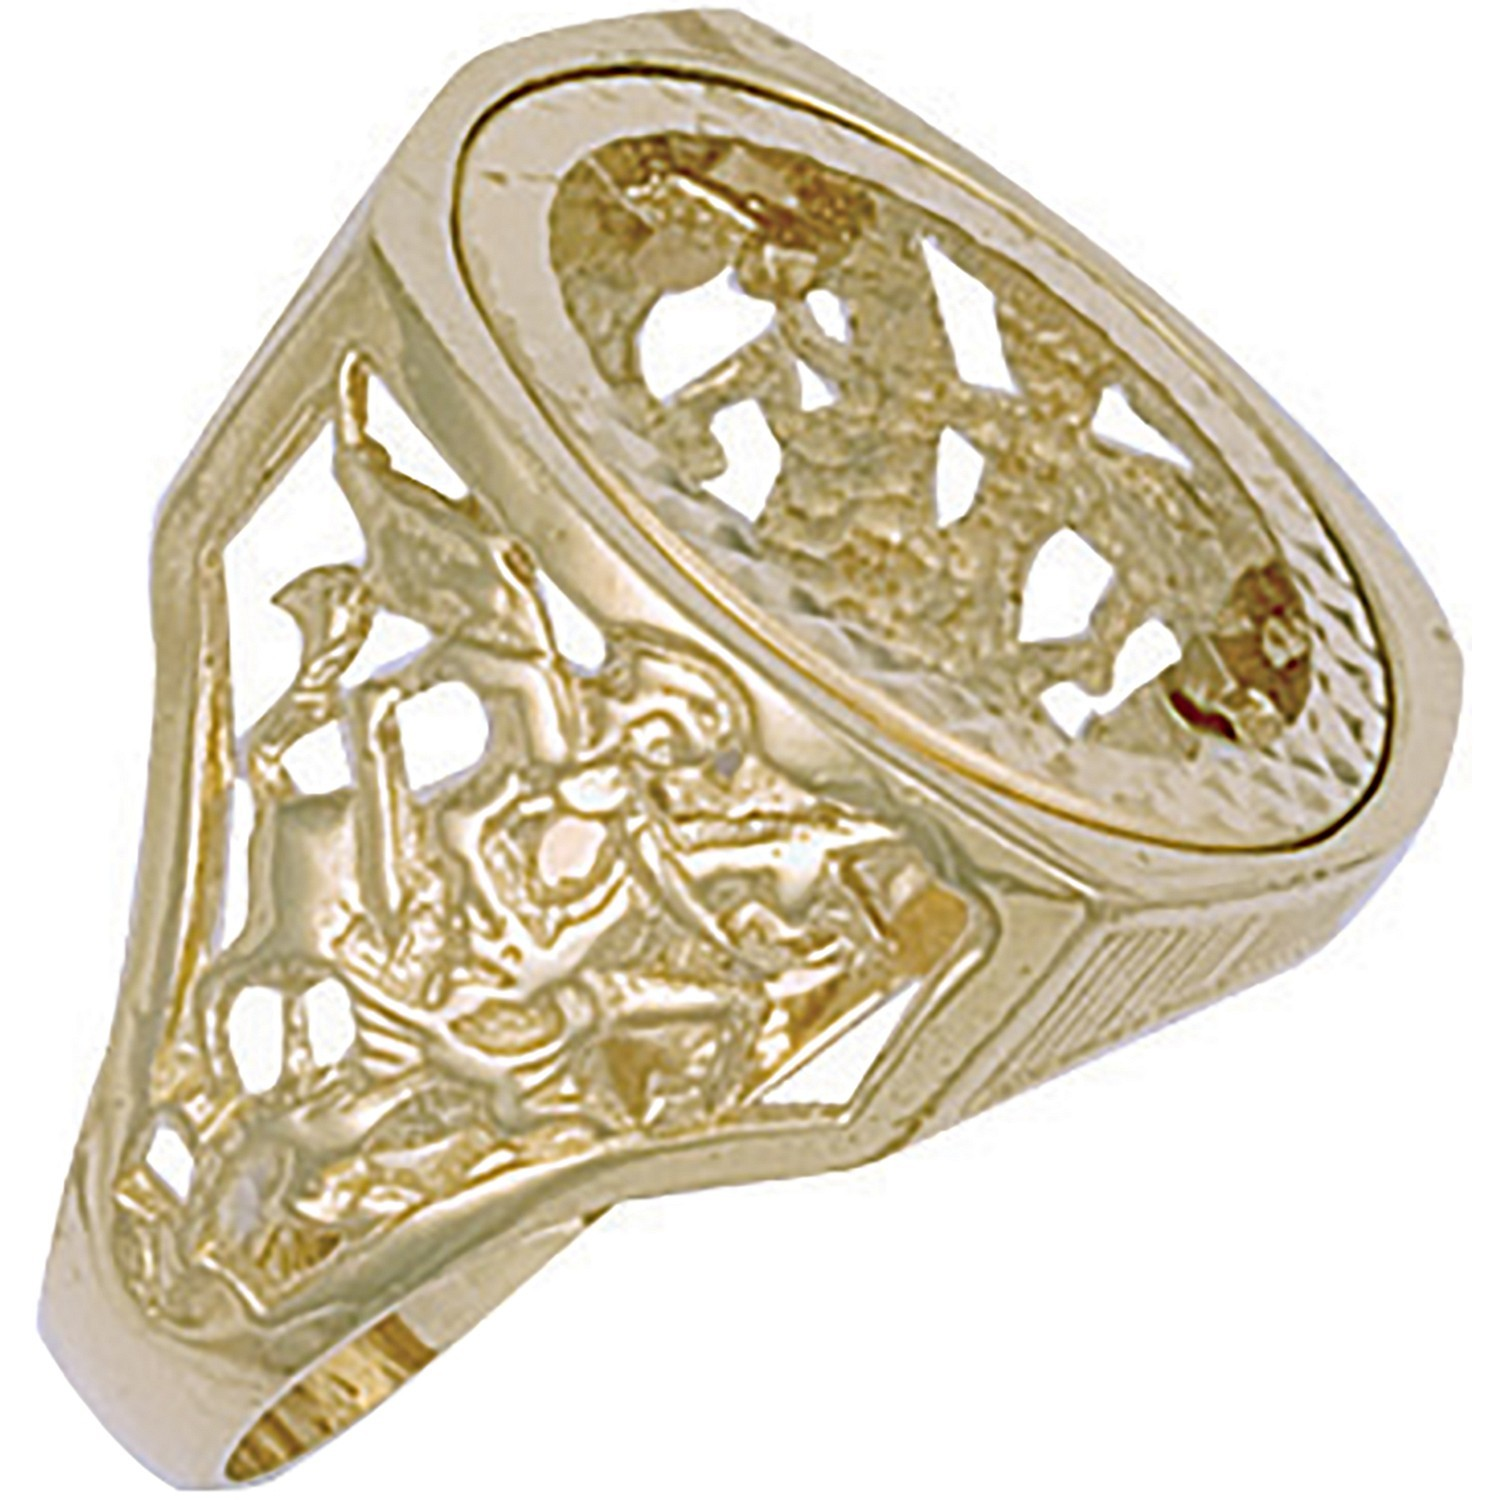 Y/G (Full) Square Top George & Dragon Sovereign Ring